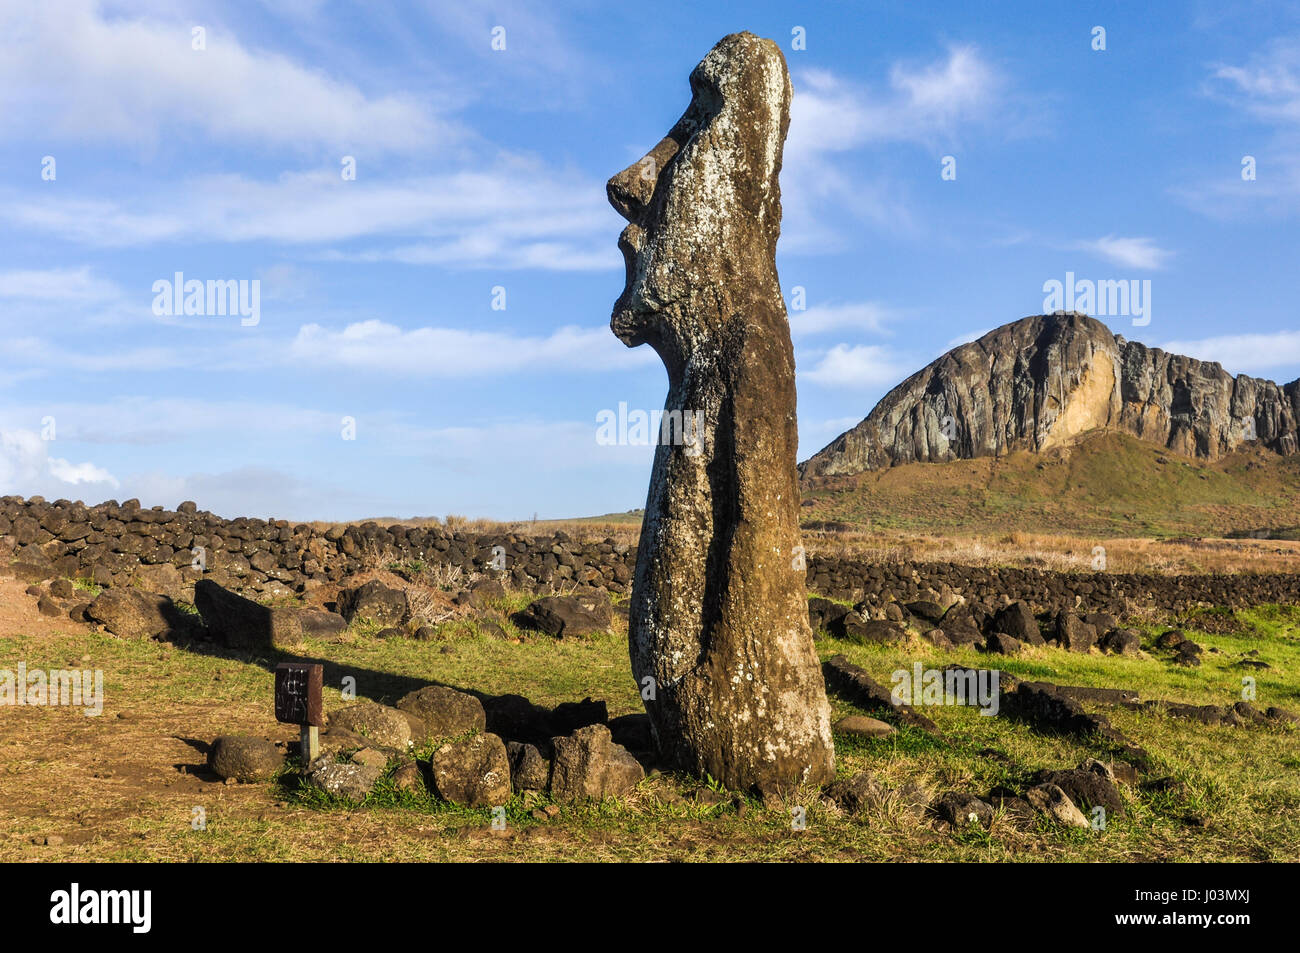 Standing lonely moai statue near the Ahu Tongariki Site on the coast of Easter Island, Chile - Stock Image